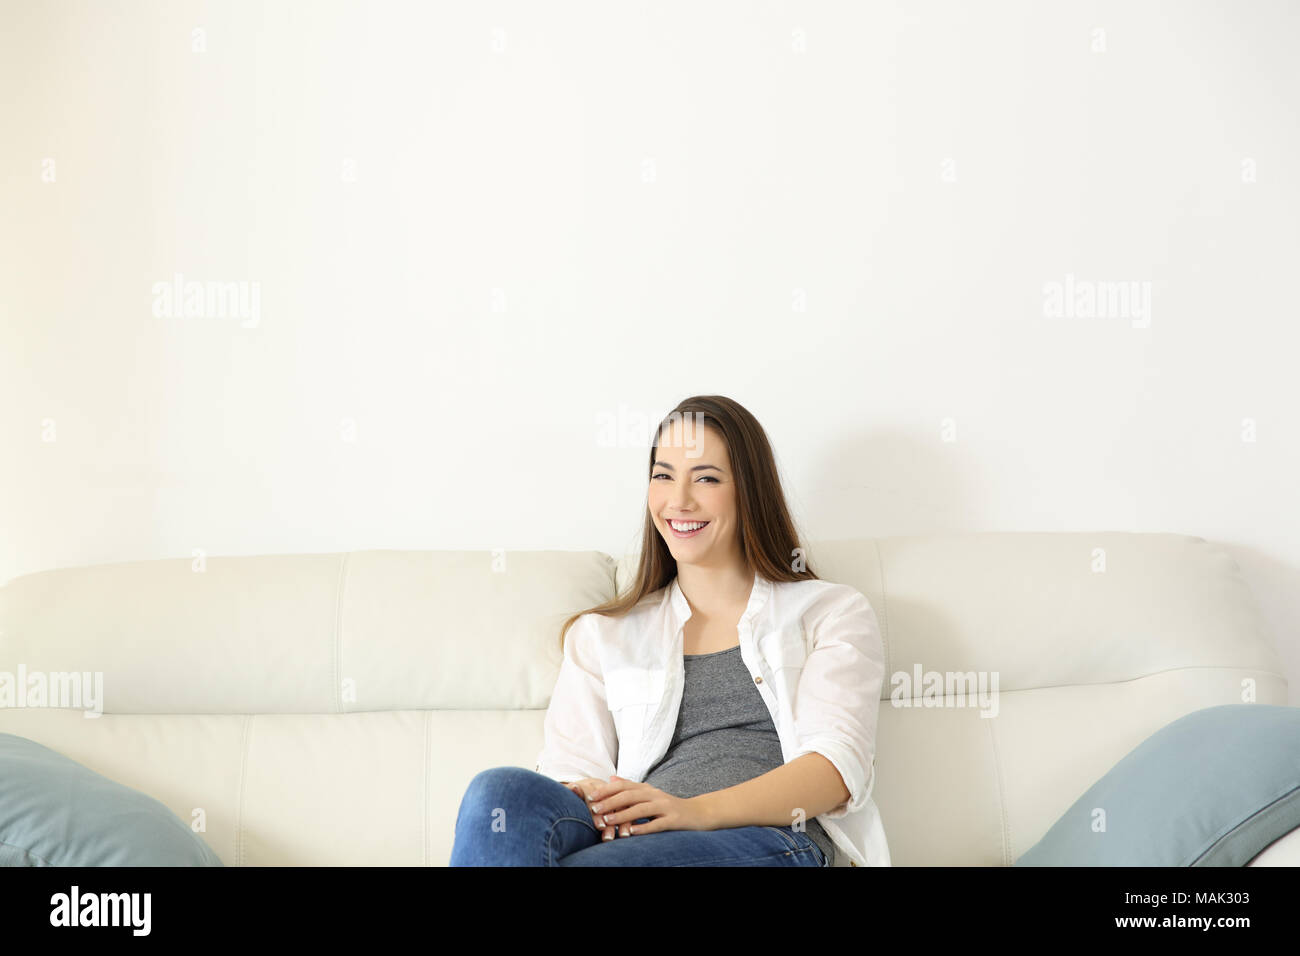 Front fiew portrait of a happy homeowner sitting on a couch looking at camera at home with copy space above - Stock Image